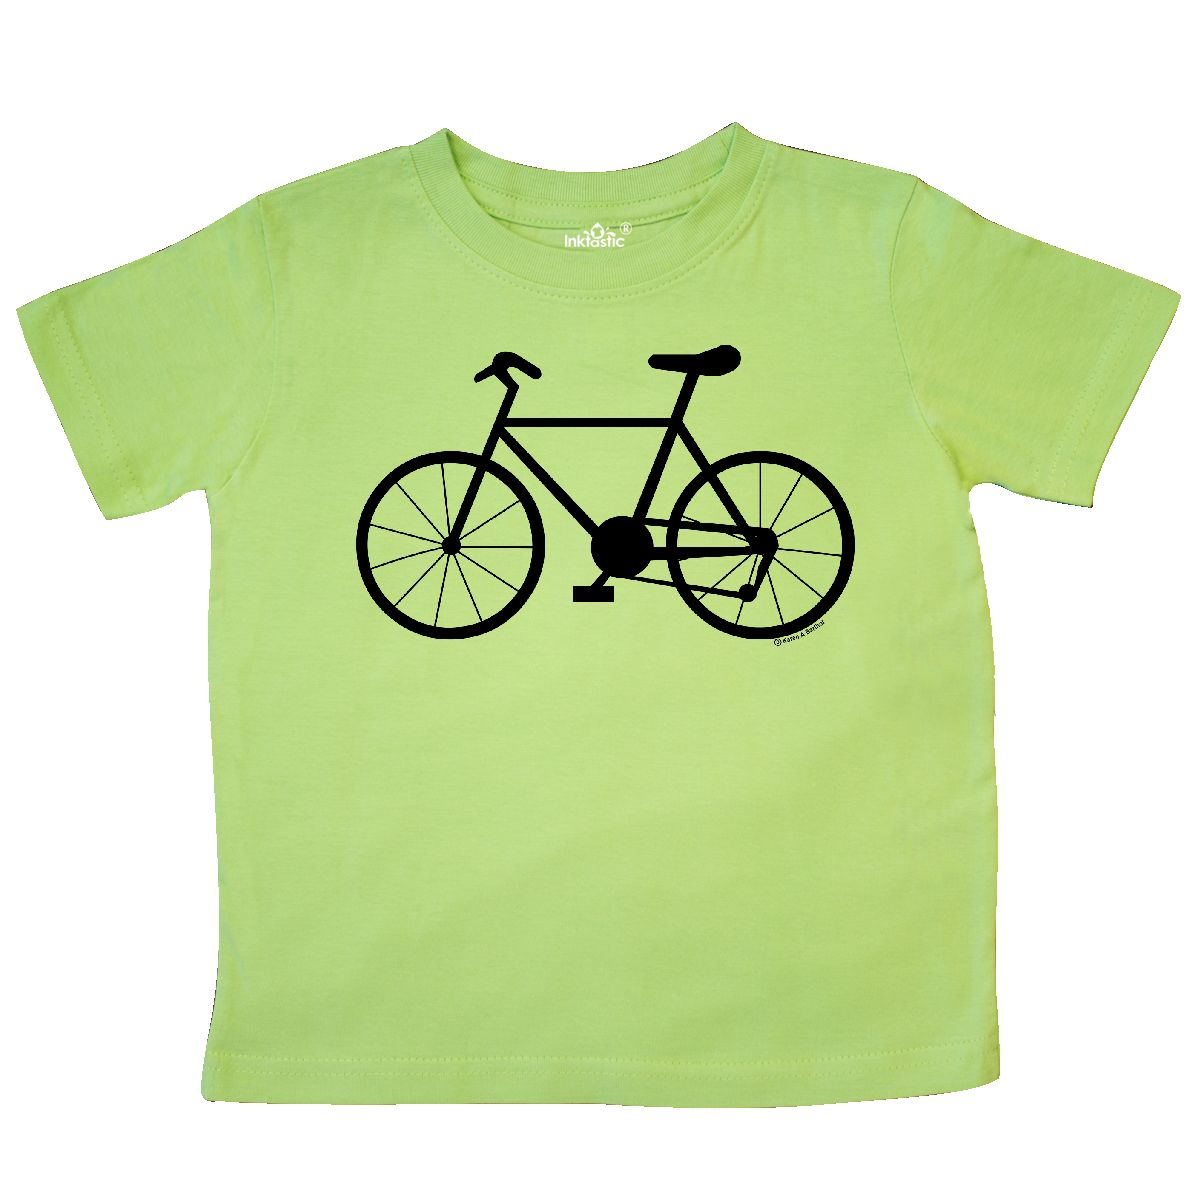 1200x1200 Inktastic Bicycle Silhouette Toddler T Shirt Bike Drawing Cycle